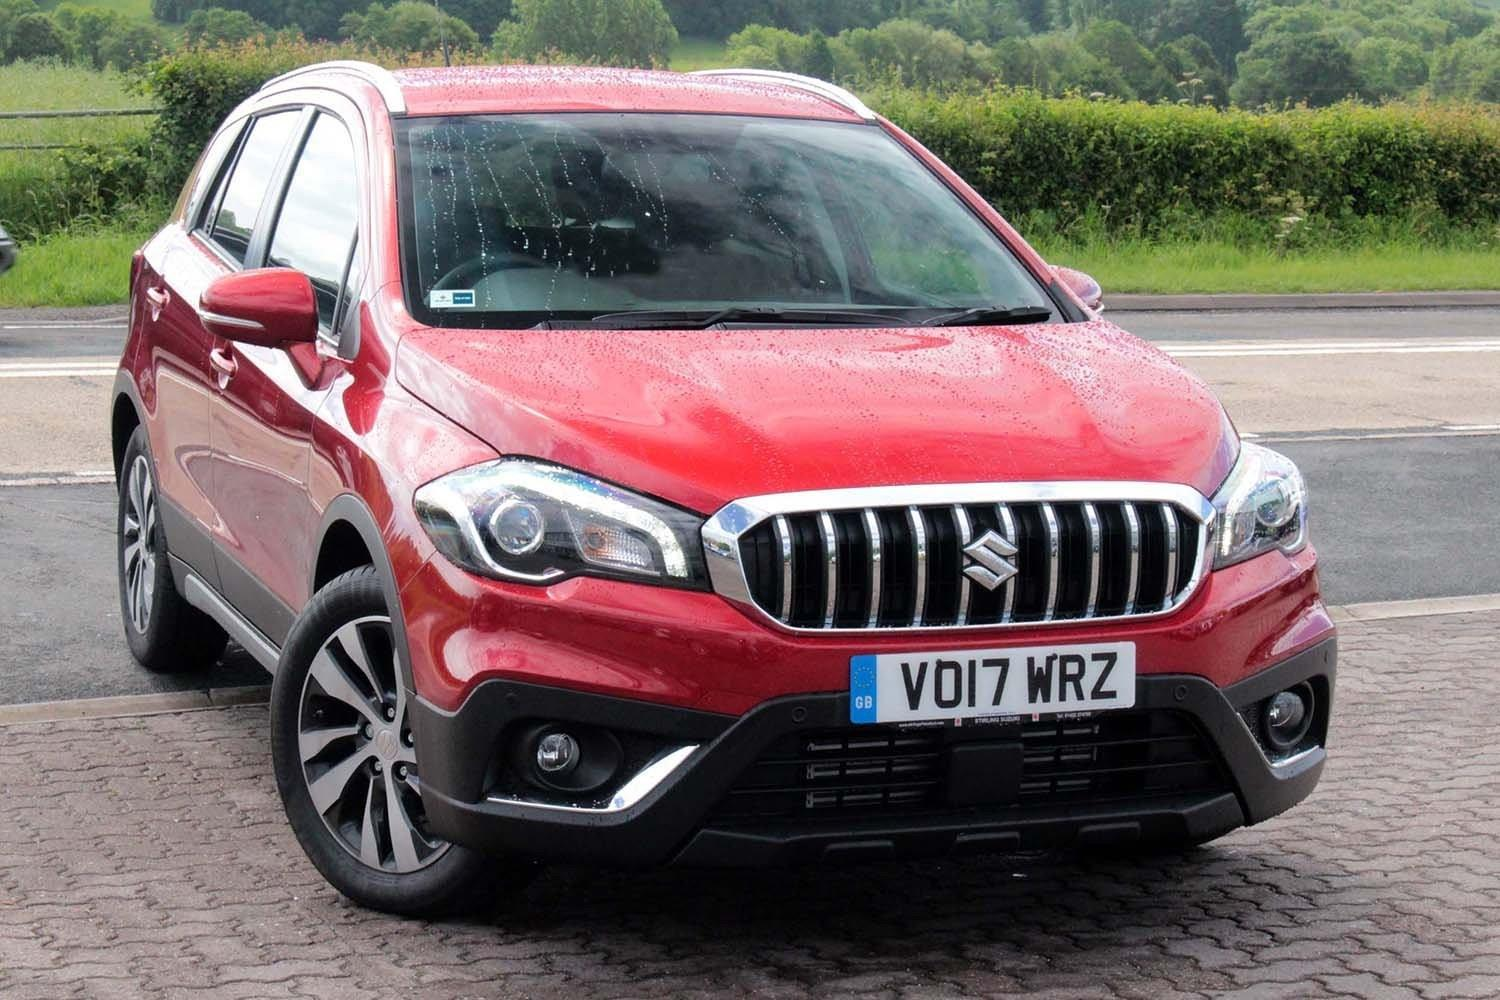 Suzuki SX4 1.0 Boosterjet (110ps) SZ-T Station Wagon Petrol Energetic Red Metallic at Suzuki UCL Milton Keynes